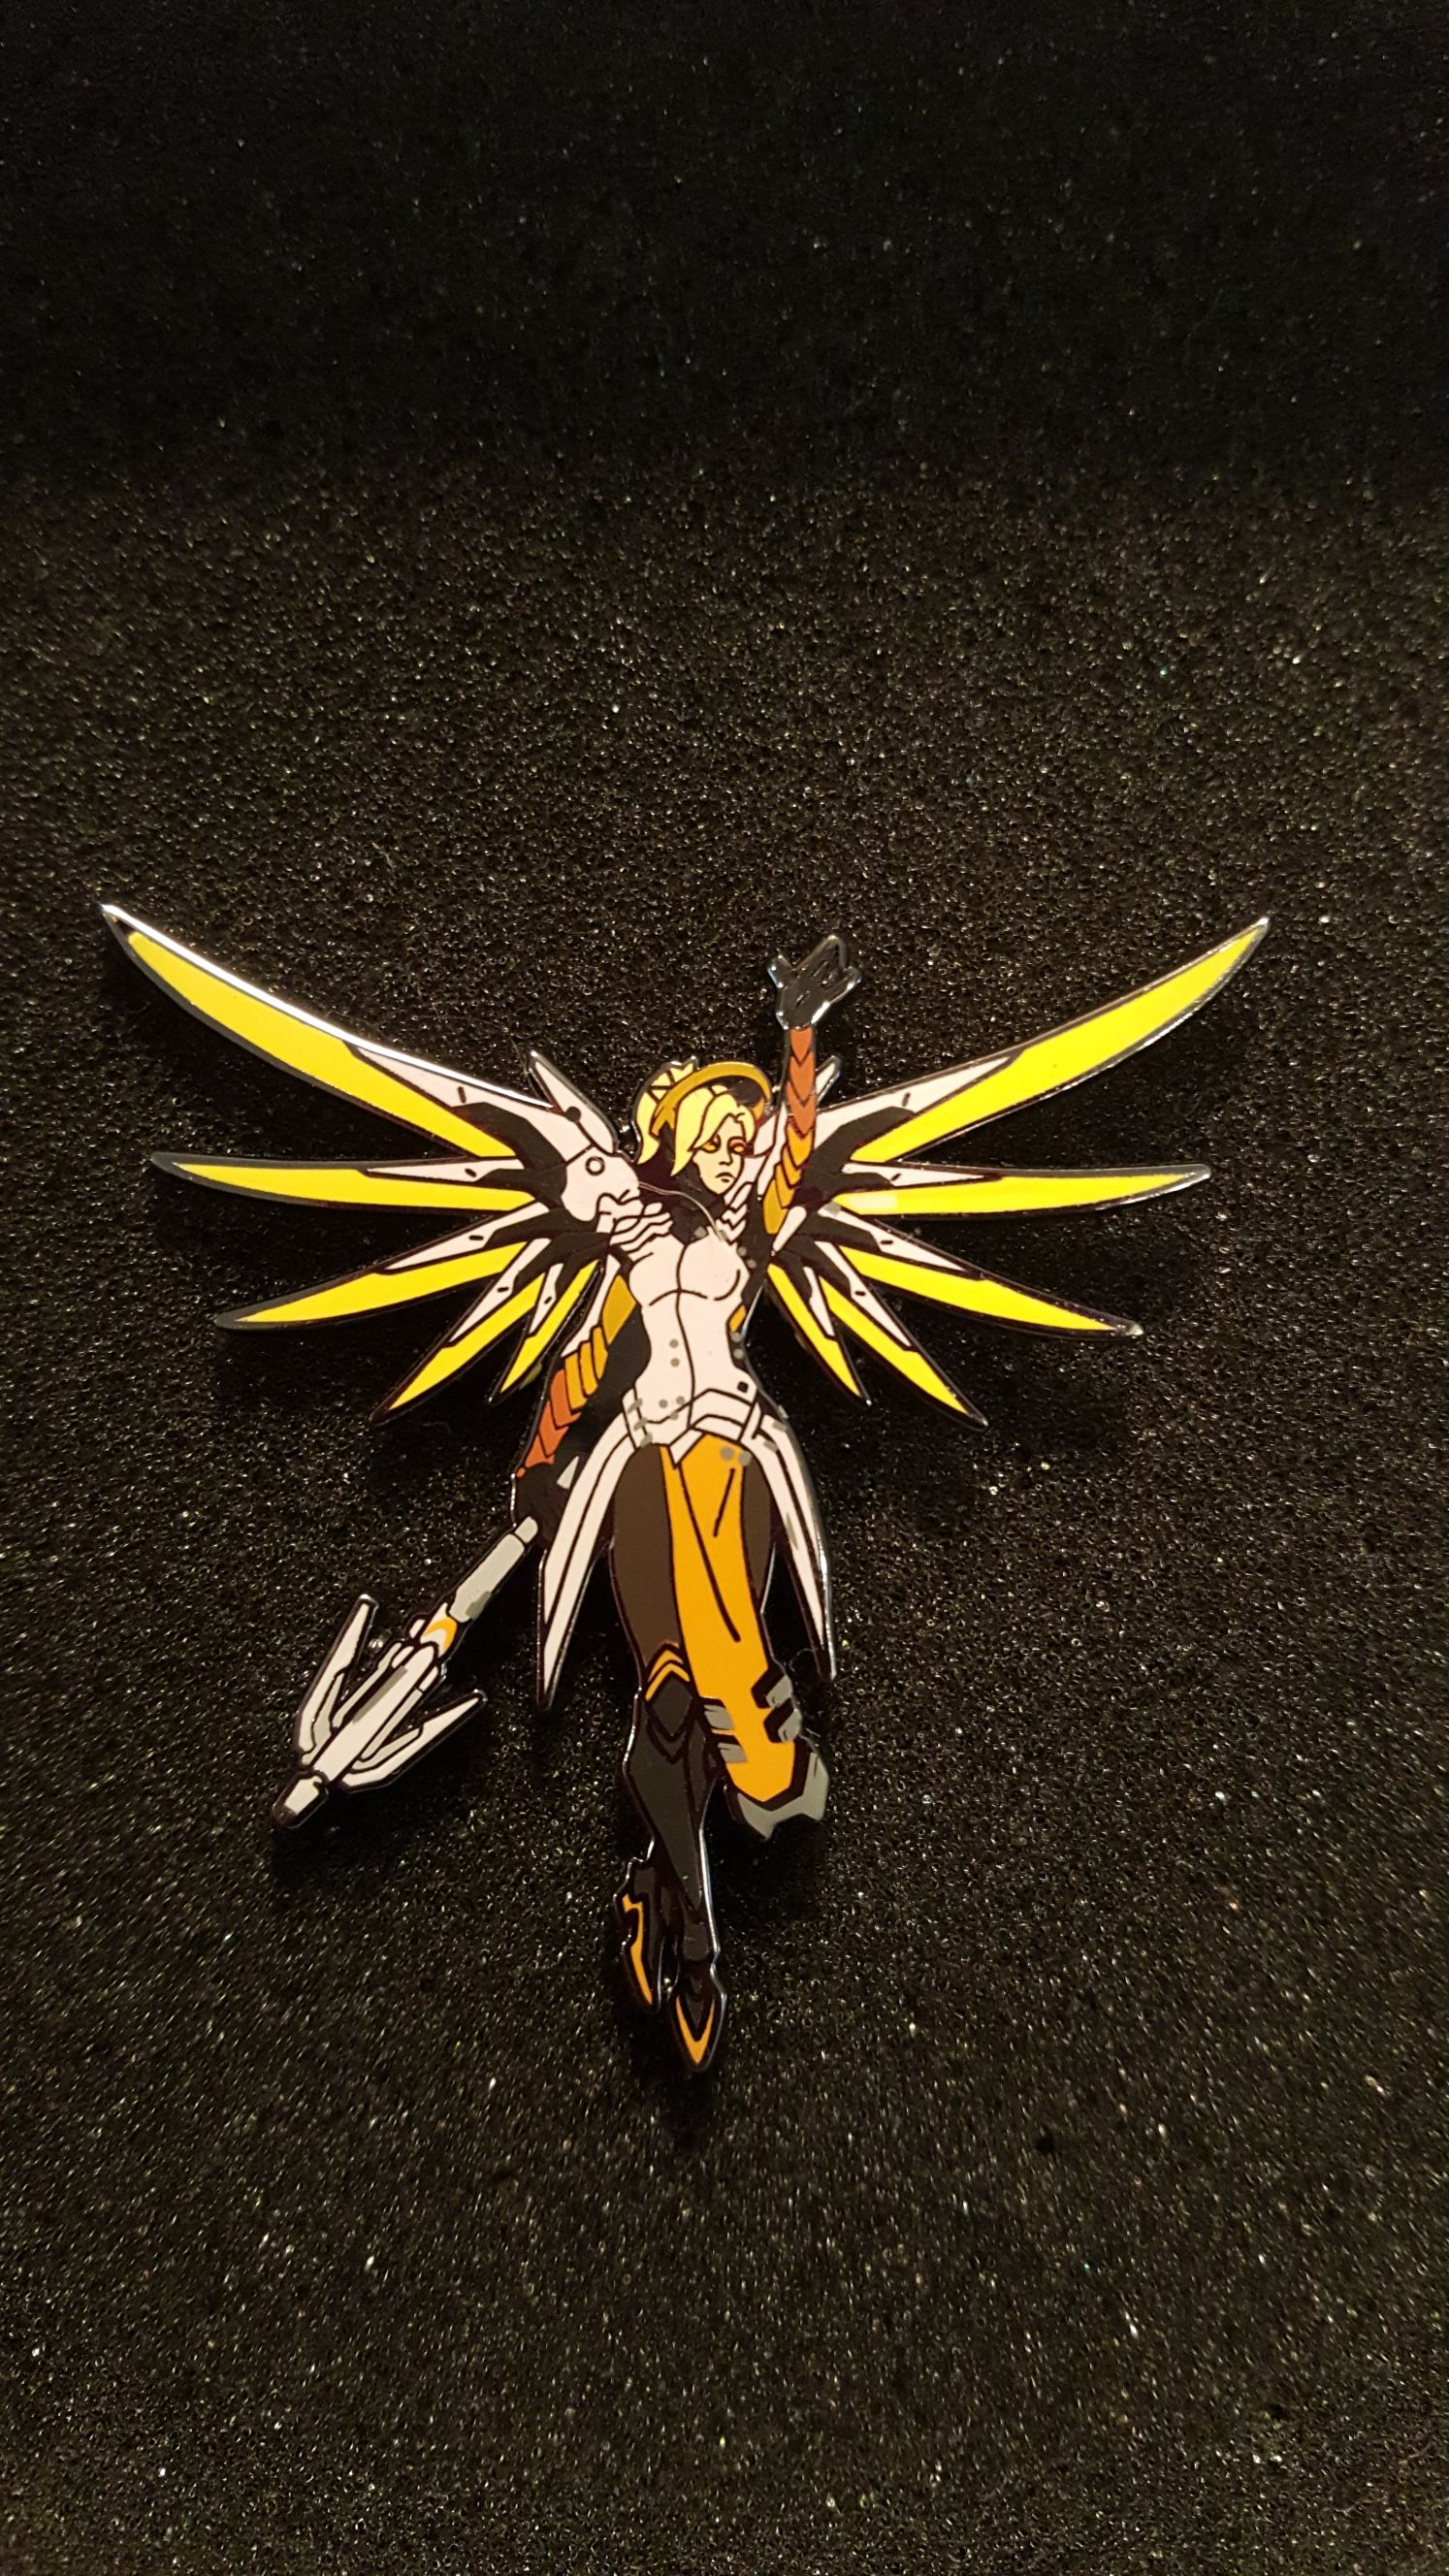 Blizzard Mercy color S4 2017 Disneypin front image (front cover)